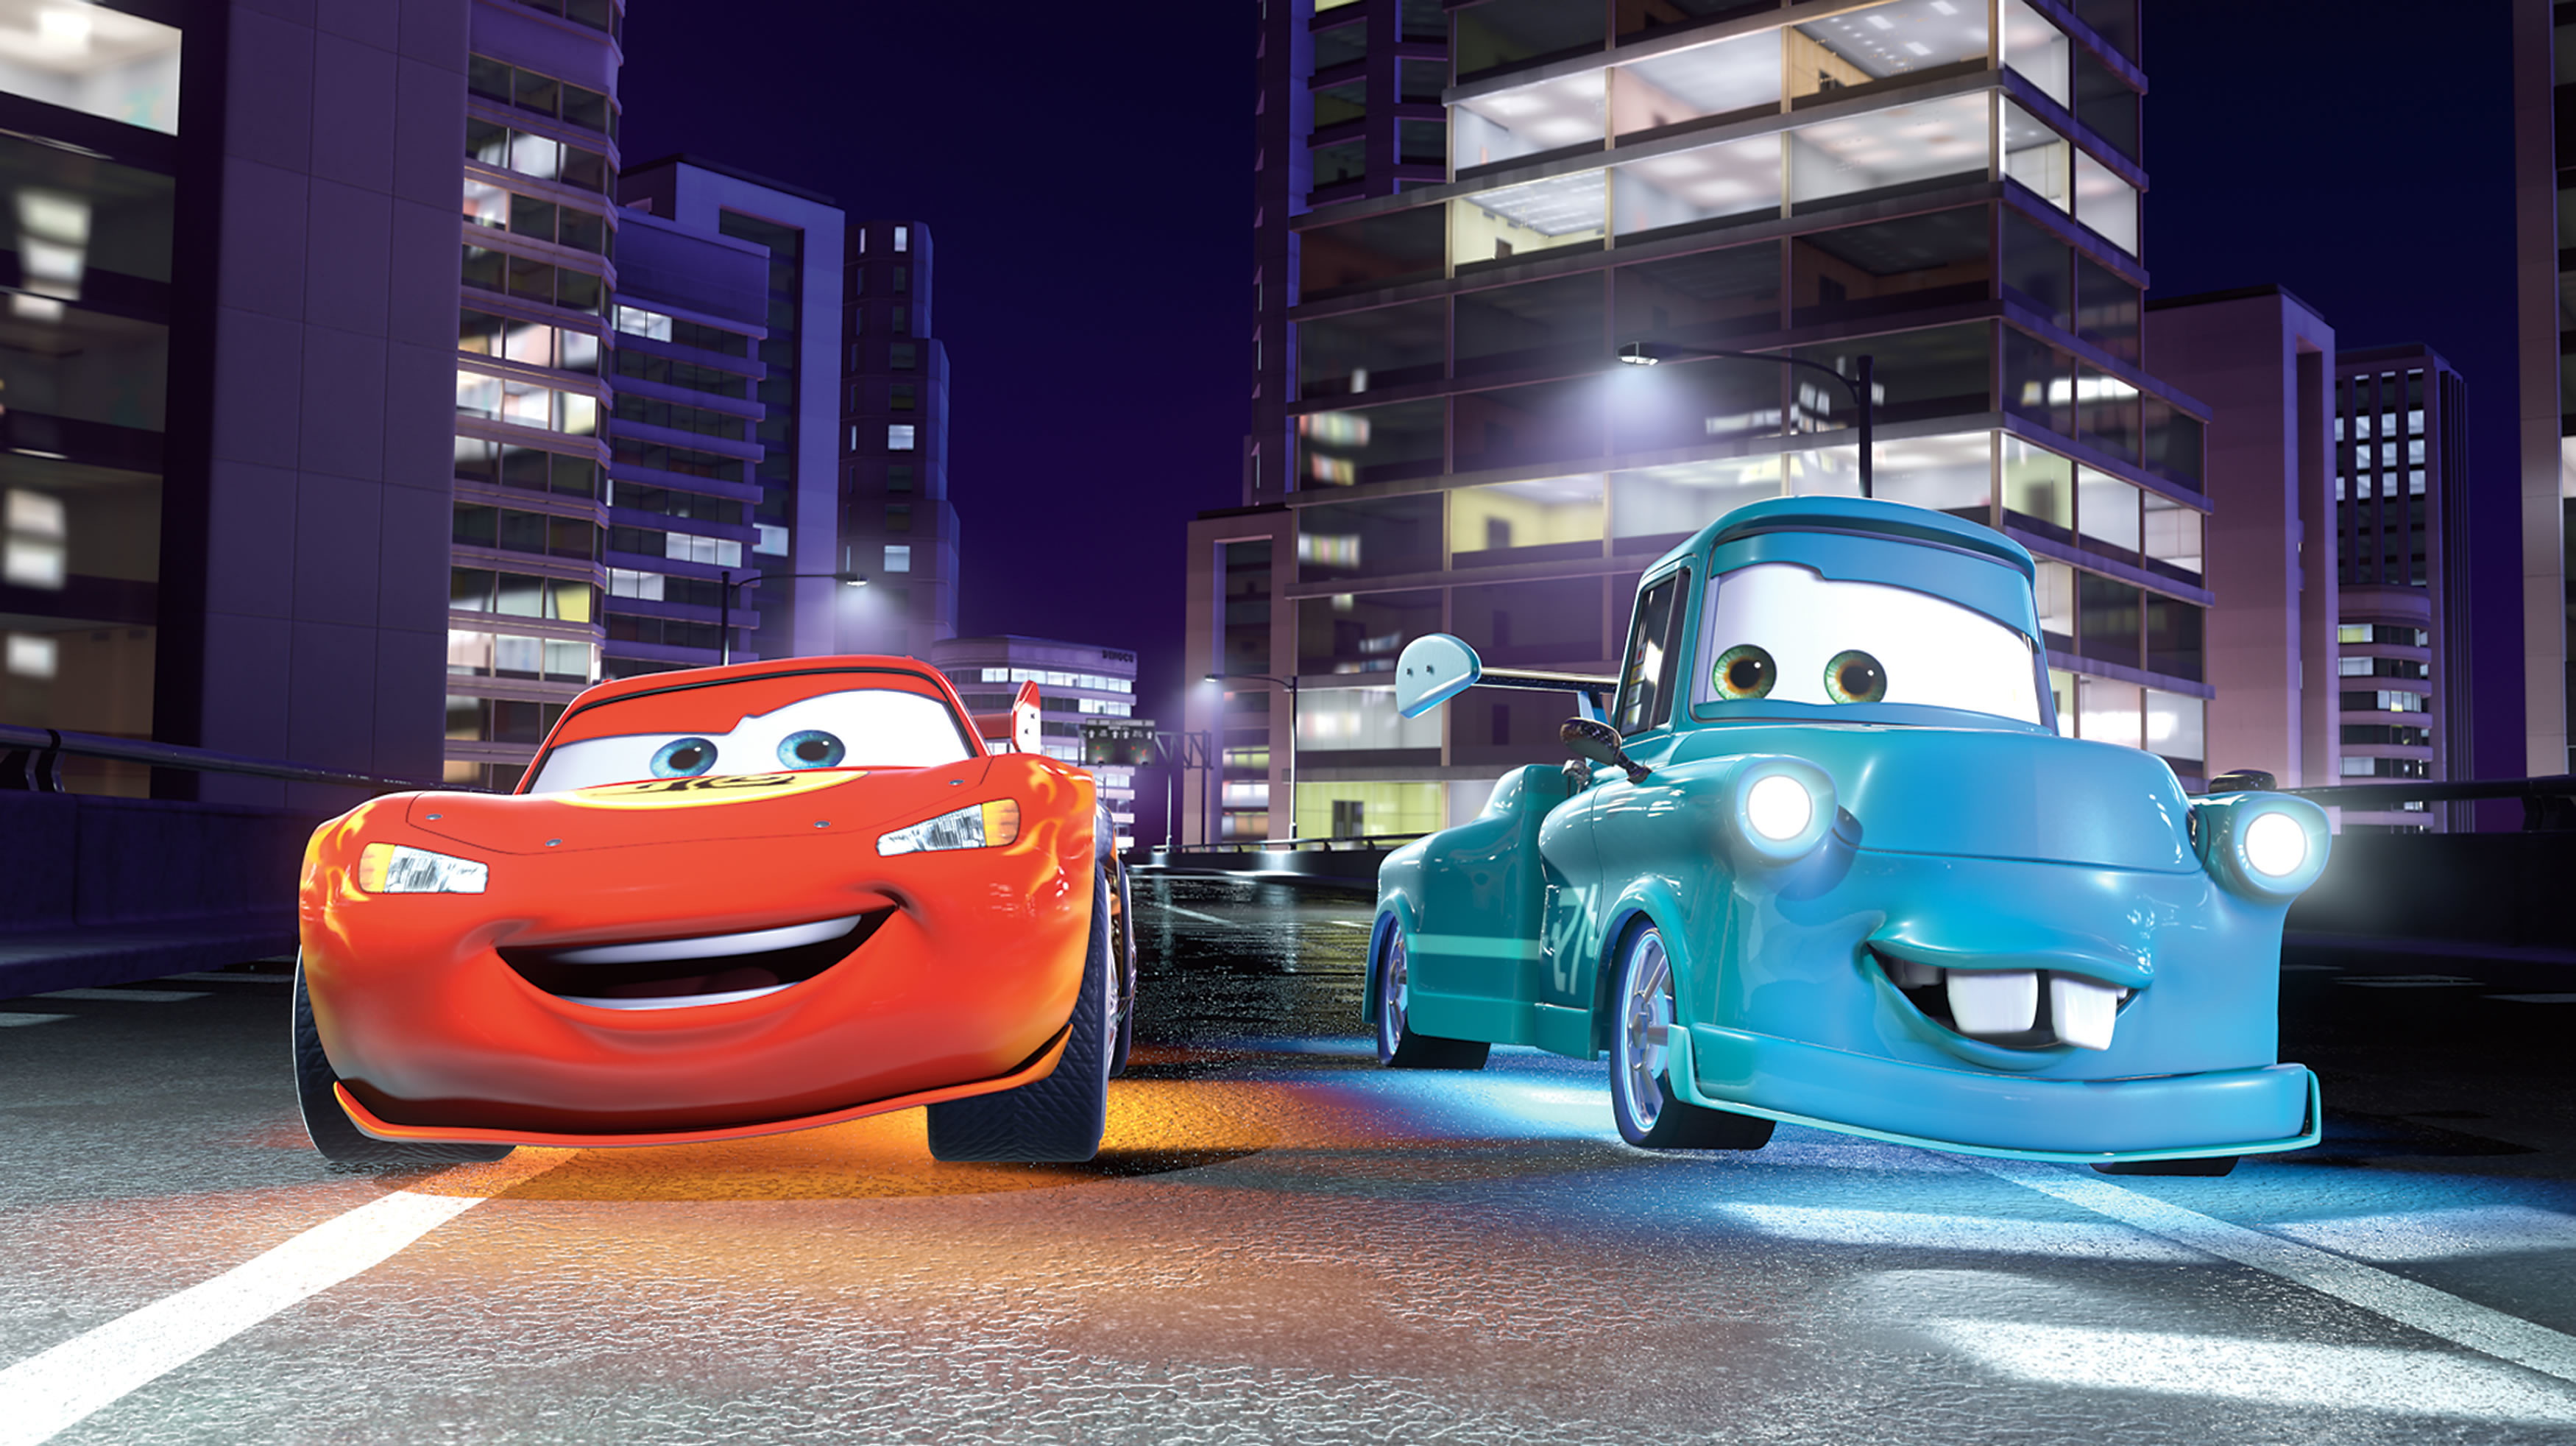 2560x1600 Disney Pixar Cars Images Wallpaper HD And Source A 2 High Resolution Wallpapers Hd